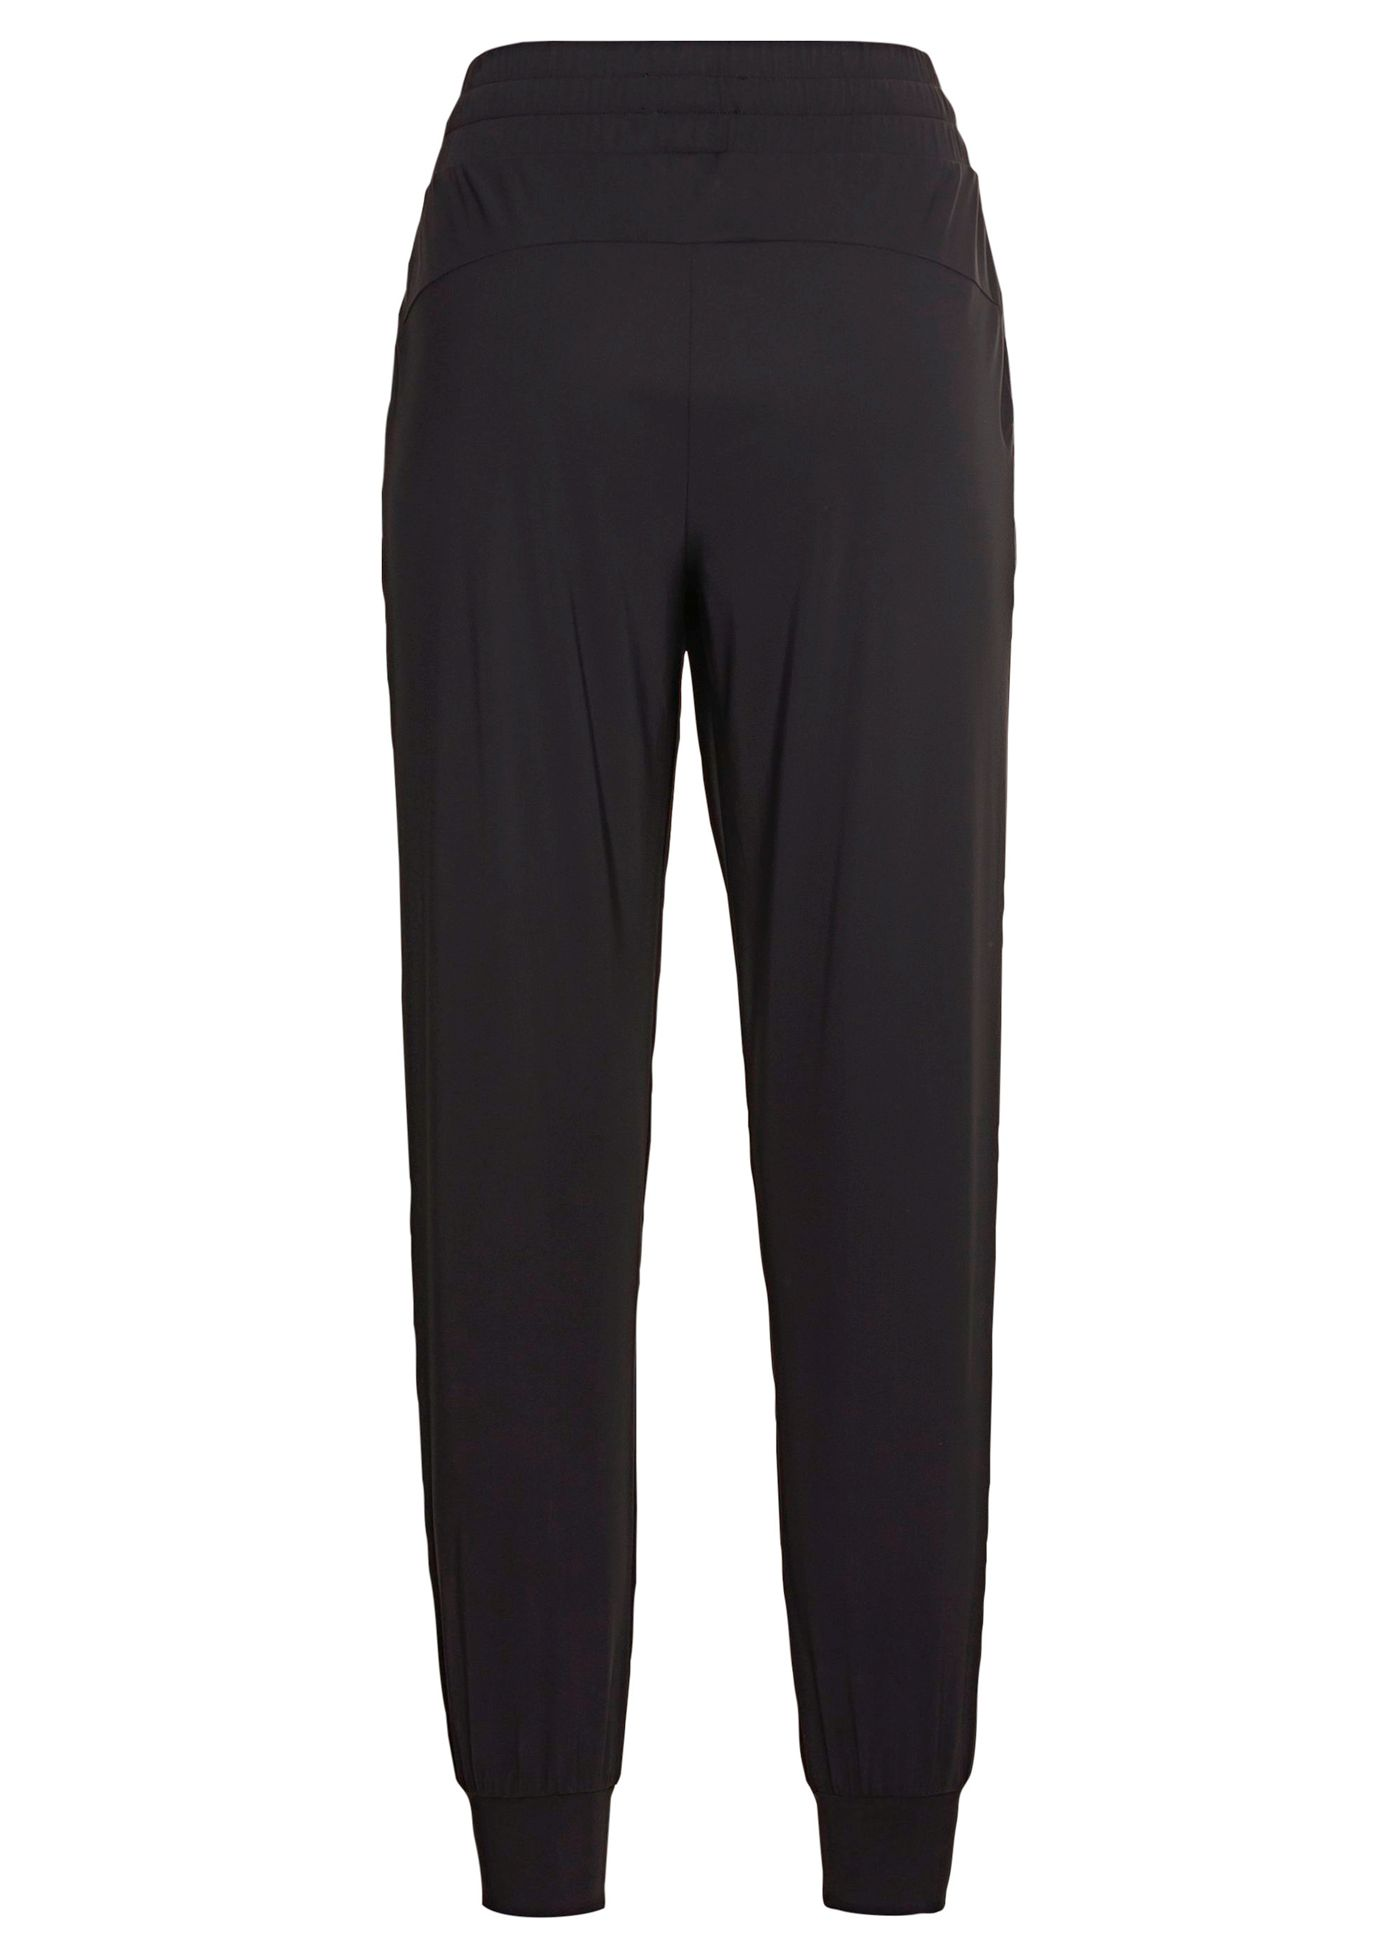 LUXE LEGER TRACK PANTS BLACK image number 1